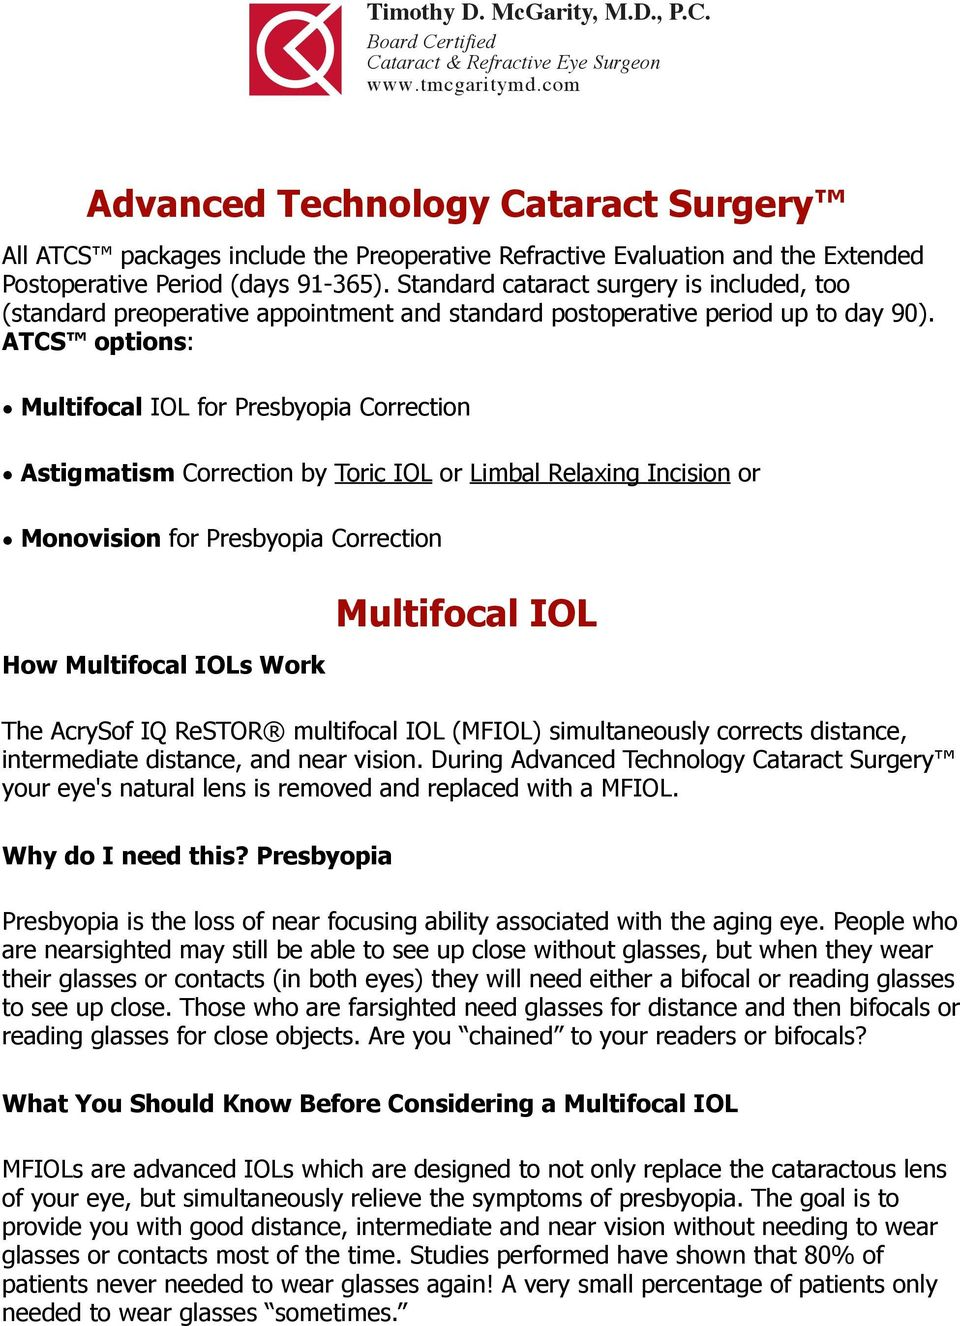 ATCS options: Multifocal IOL for Presbyopia Correction Astigmatism Correction by Toric IOL or Limbal Relaxing Incision or Monovision for Presbyopia Correction How Multifocal IOLs Work Multifocal IOL